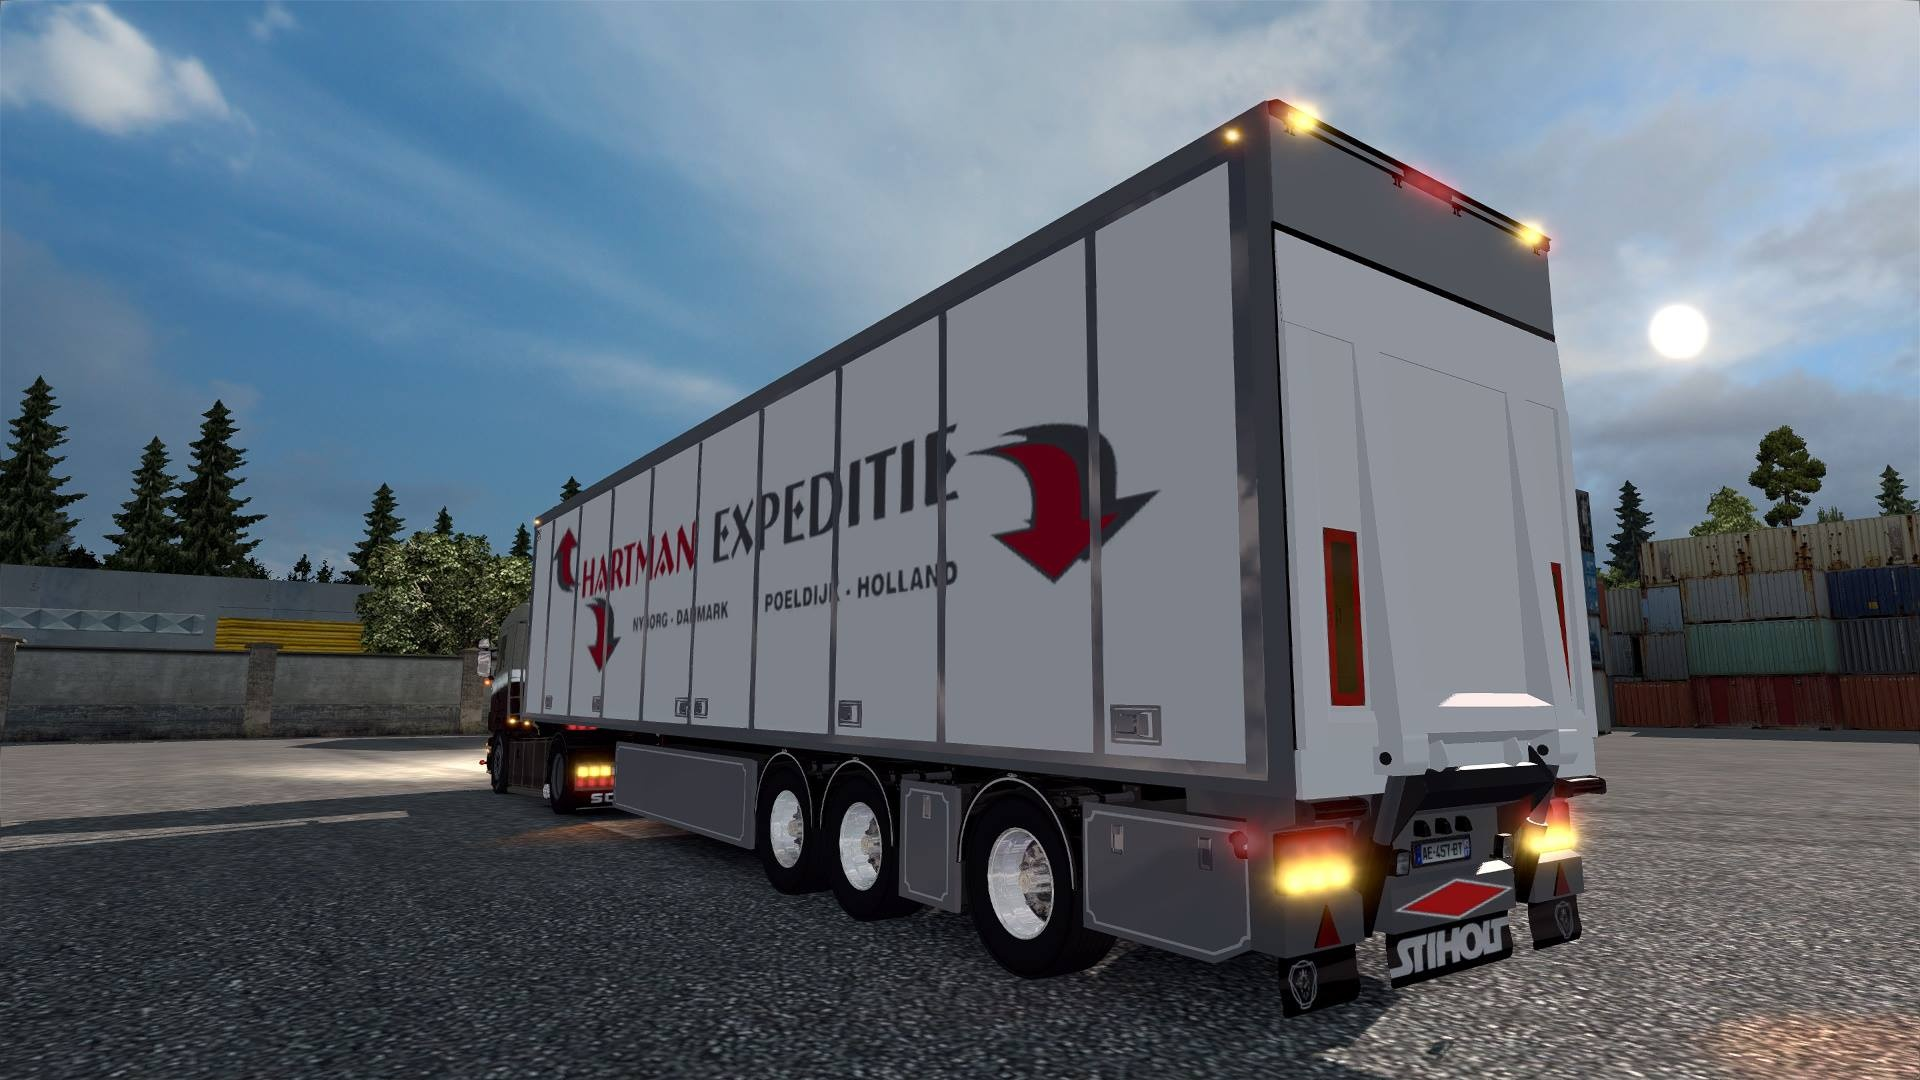 ETS2 Hartman Expeditie FRC Trailer Model